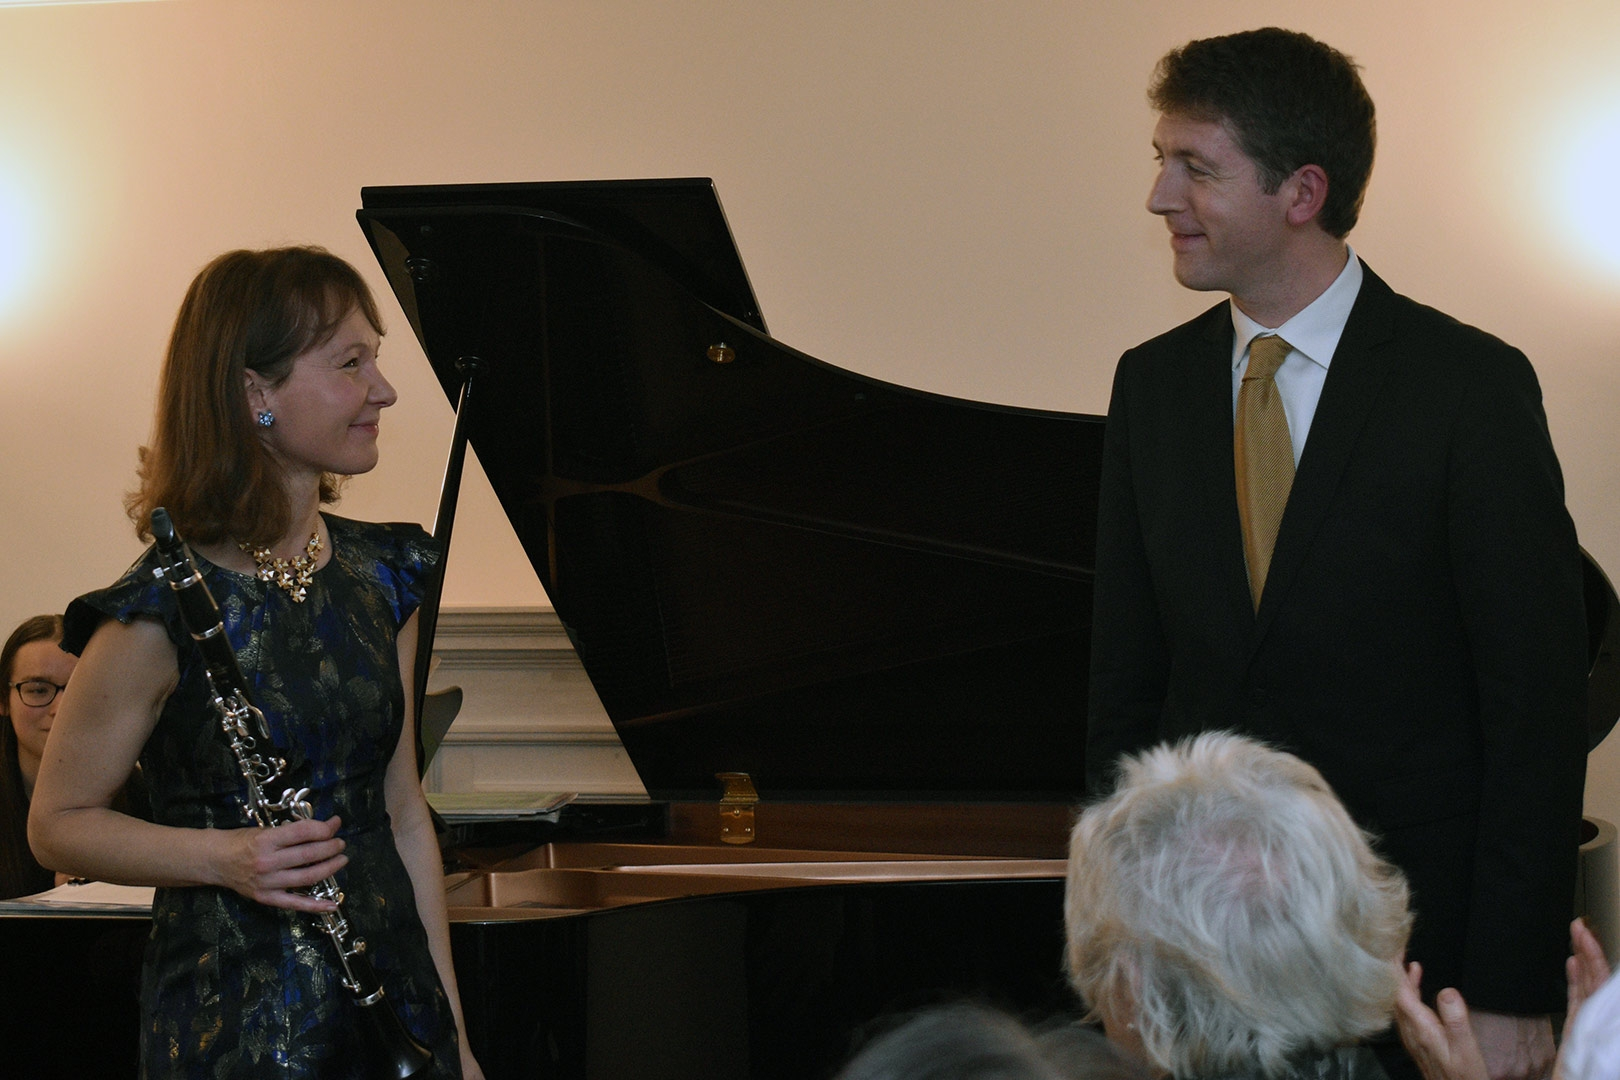 Emma Johnson & Finghin Collins at Breinton